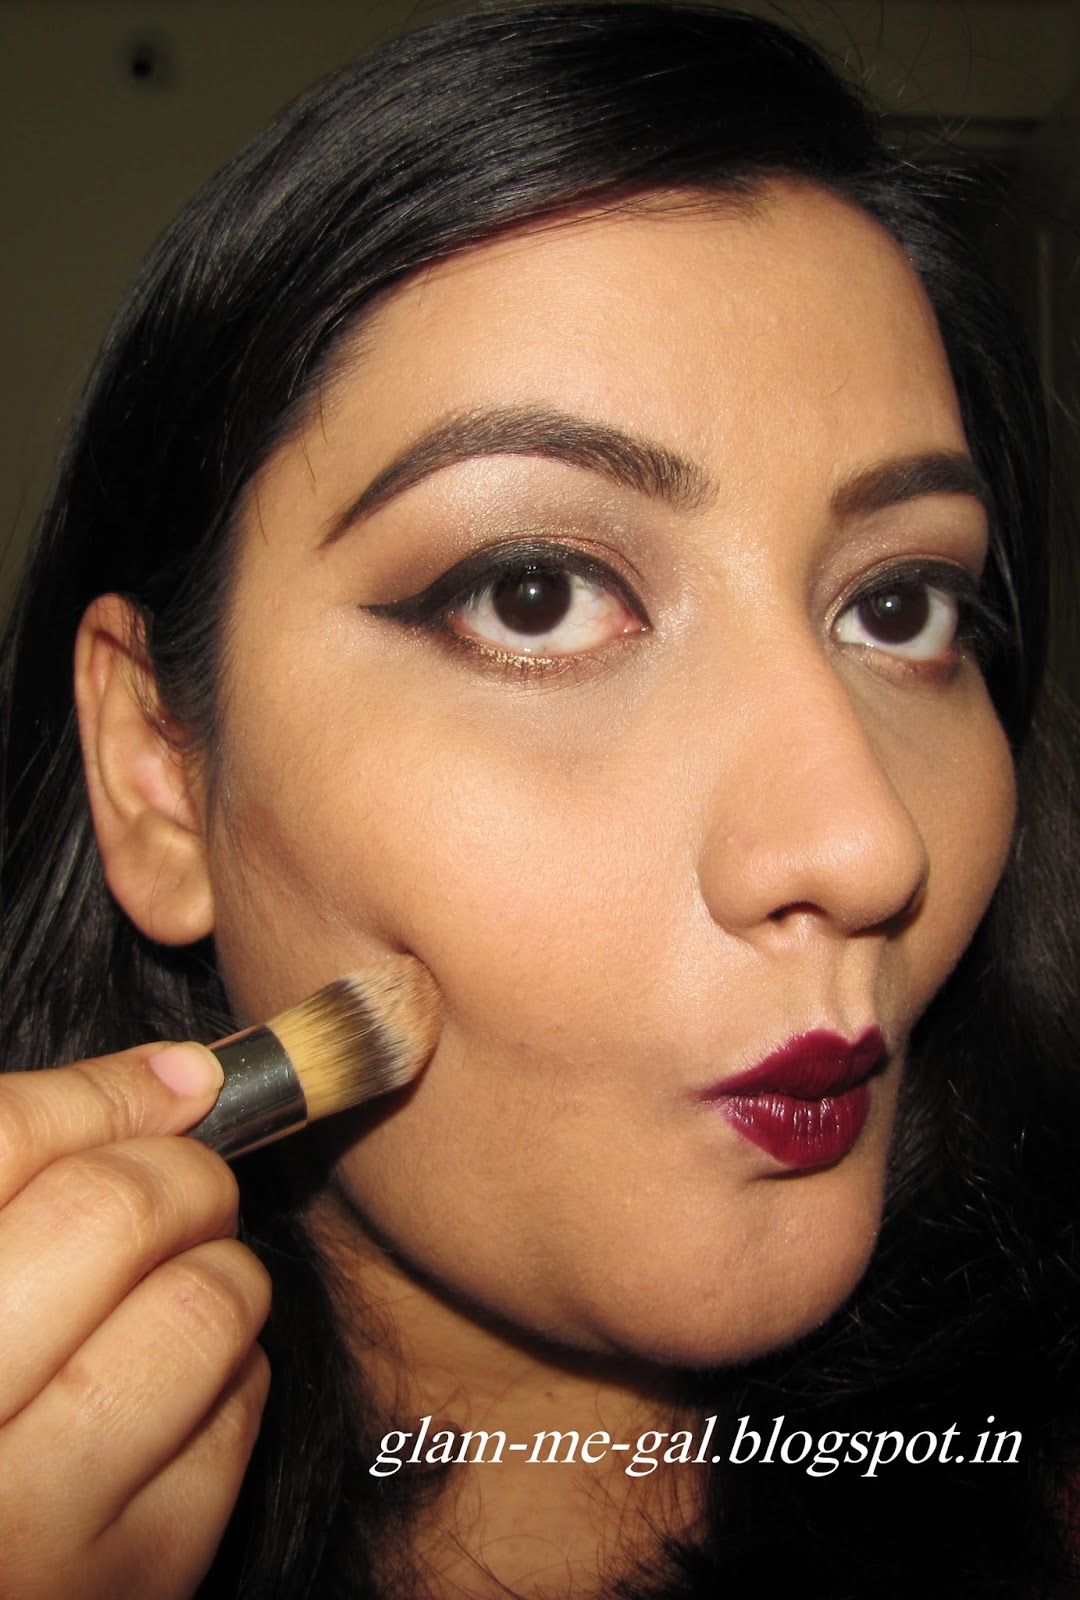 MAKEUP BASICS 101 ON HOW TO CONTOUR AND HIGHLIGHT YOUR